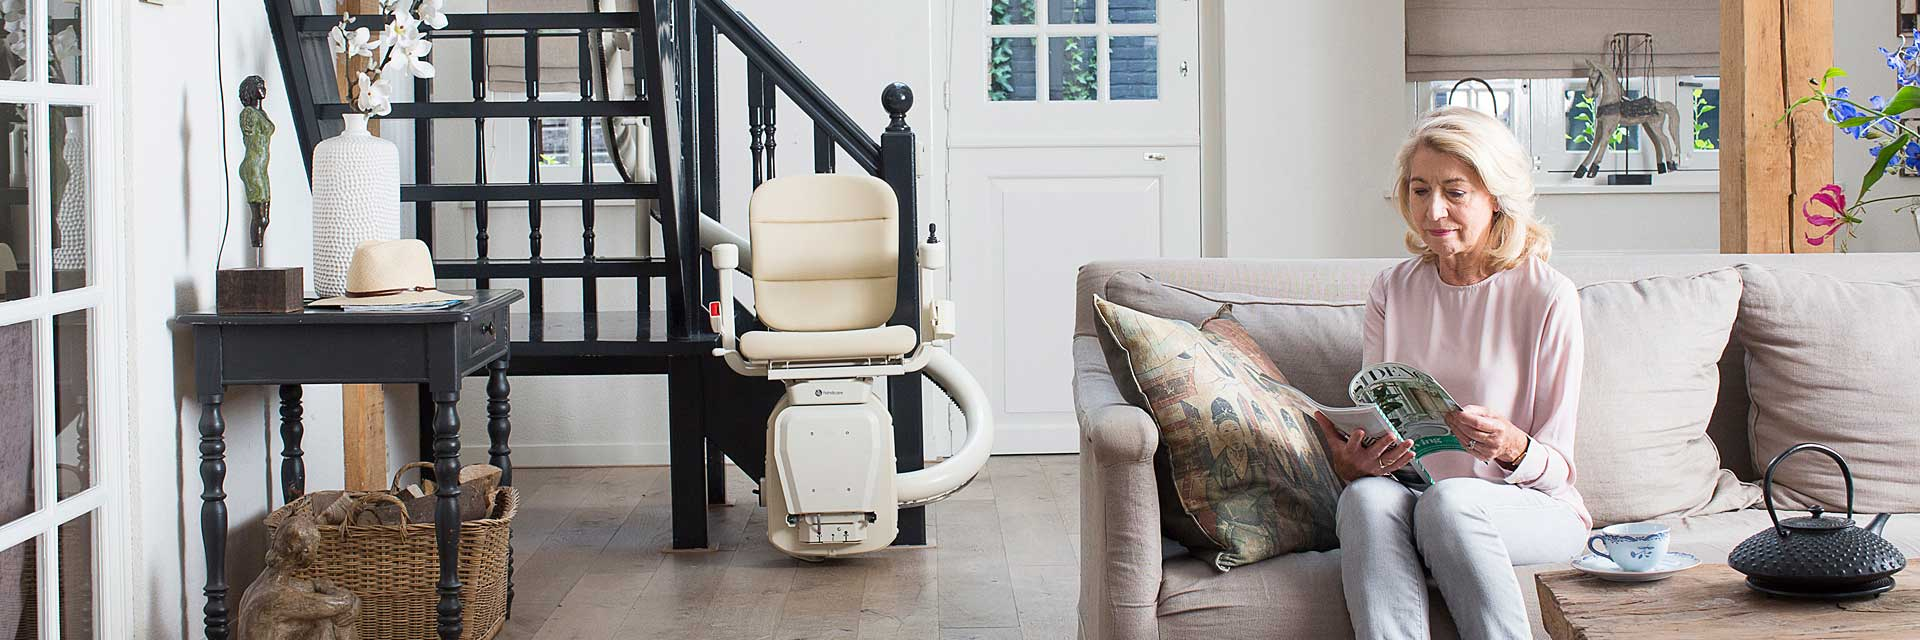 Rembrandt Stairlifts